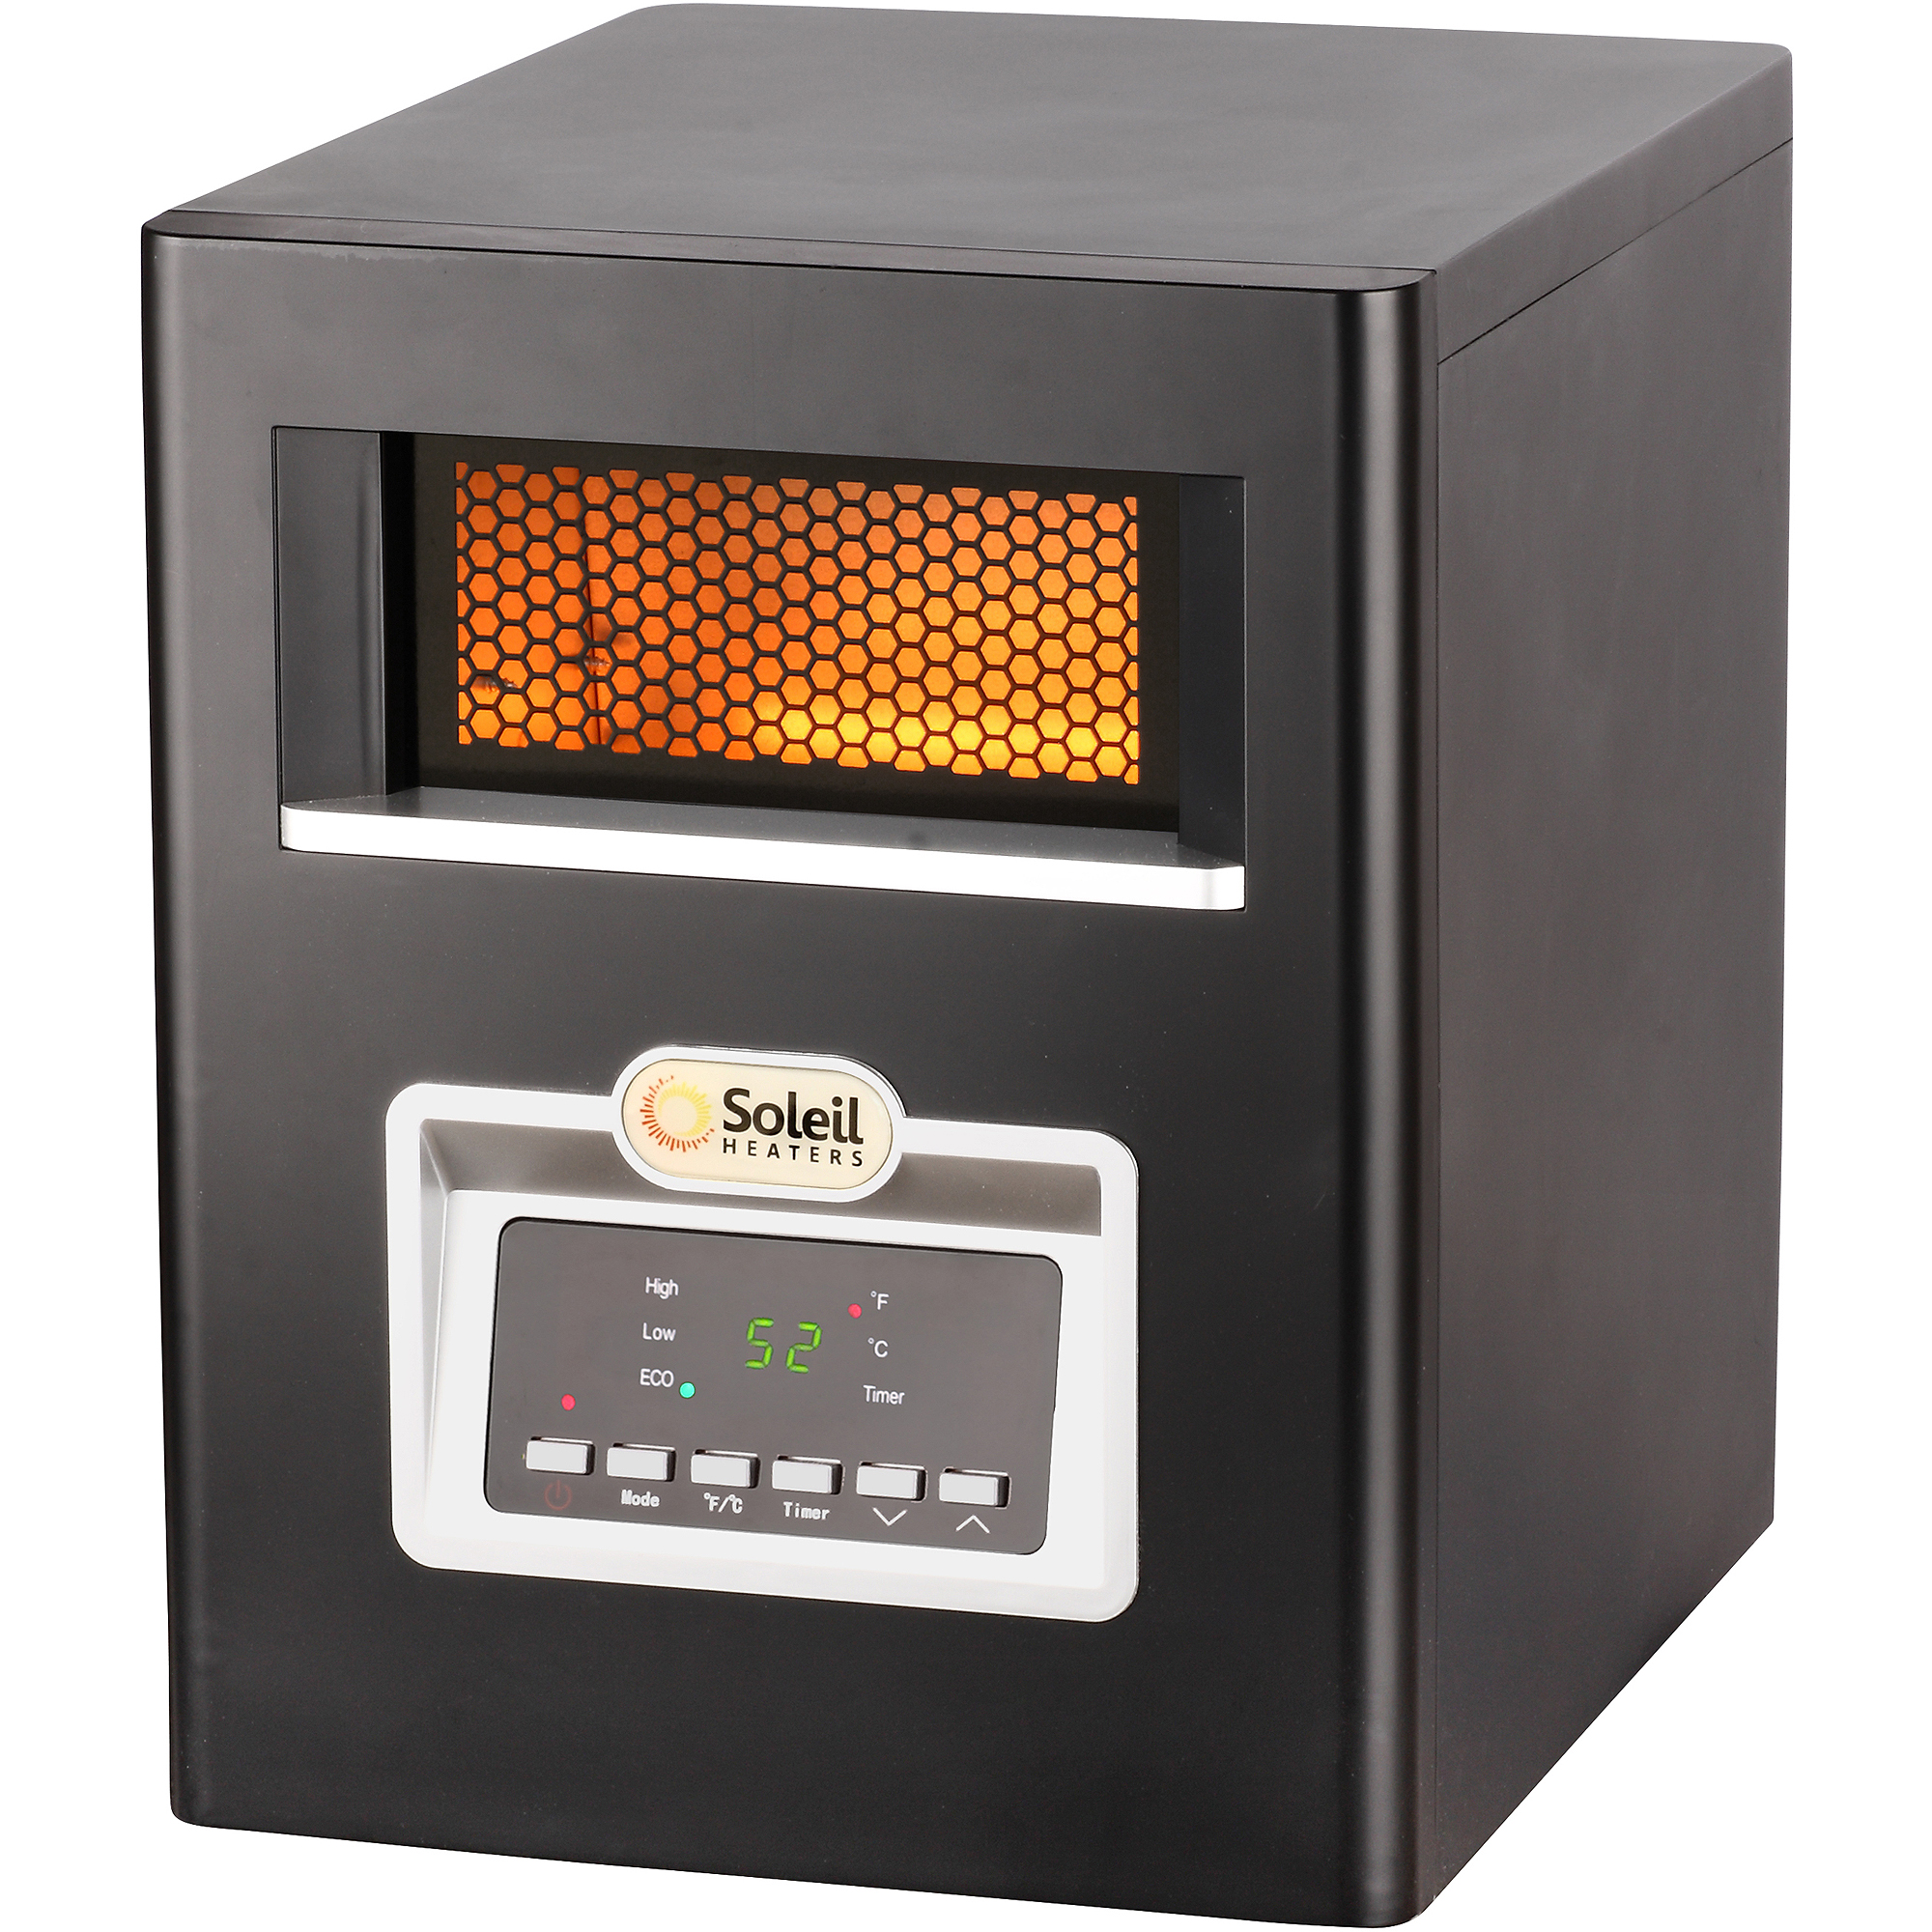 hight resolution of soleil electric infrared cabinet space heater 1500w ph 91f walmart com